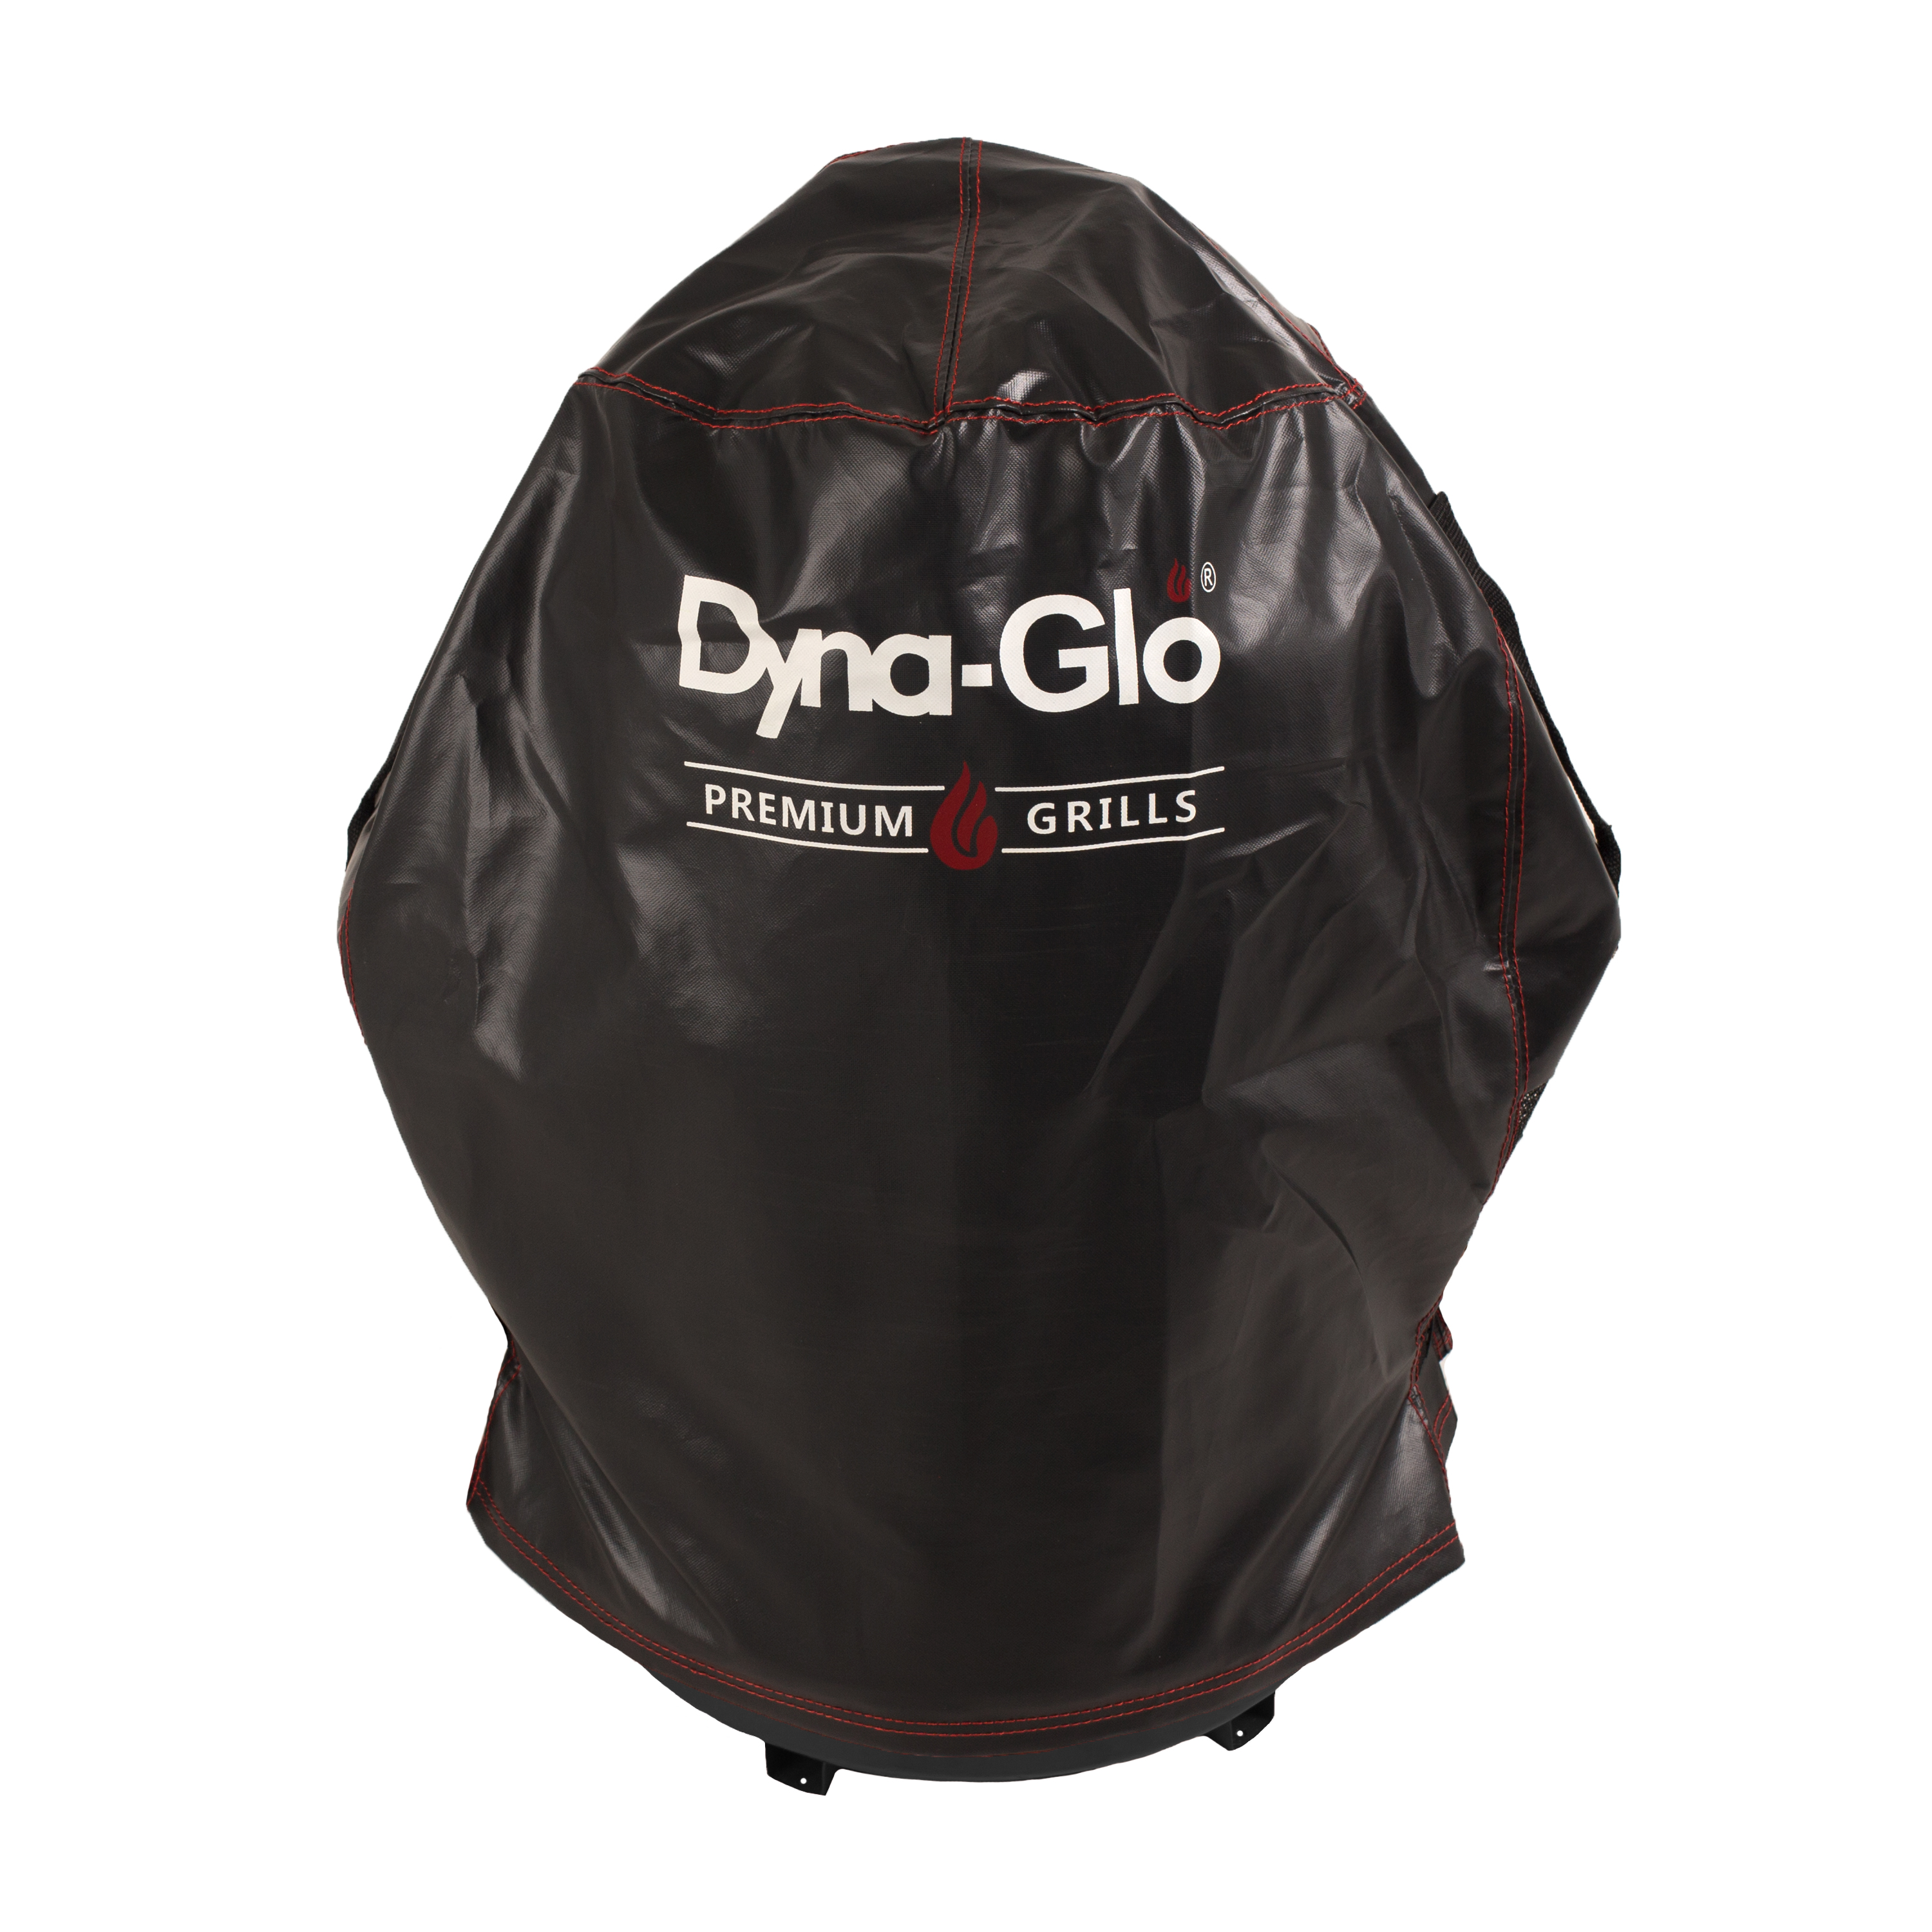 Dyna-Glo Compact Charcoal Smoker Cover